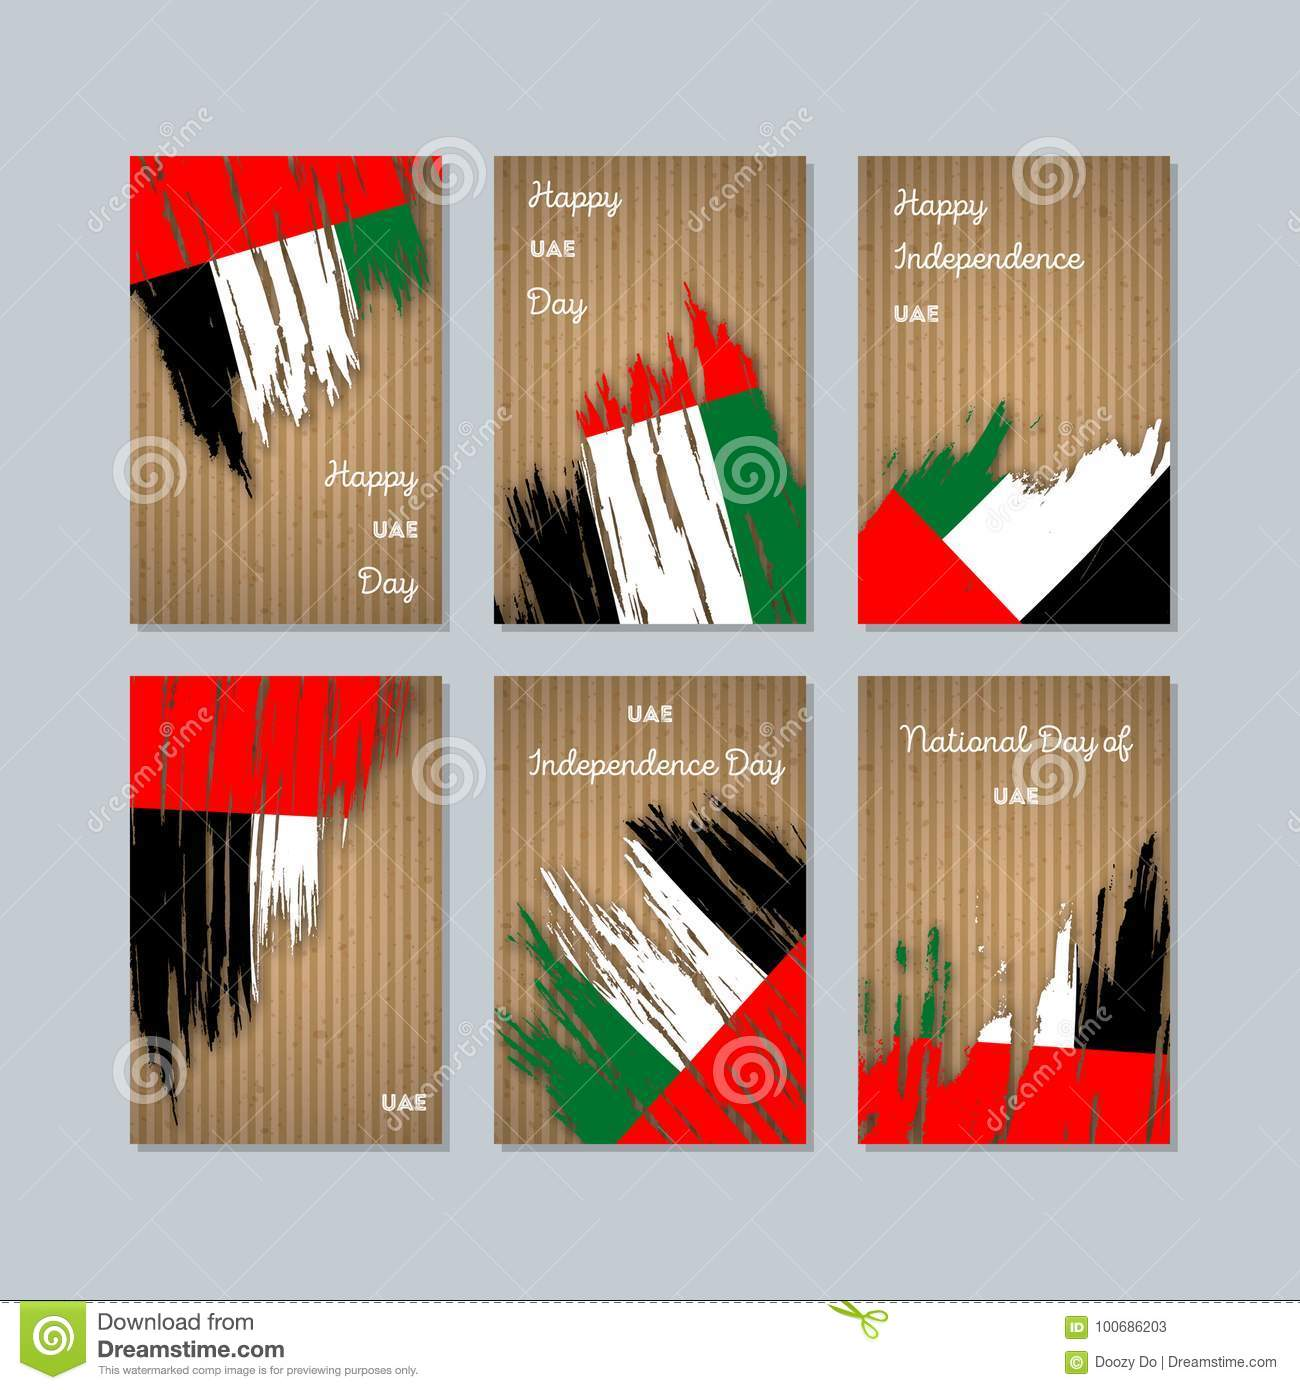 Uae patriotic cards for national day stock vector illustration of uae patriotic cards for national day m4hsunfo